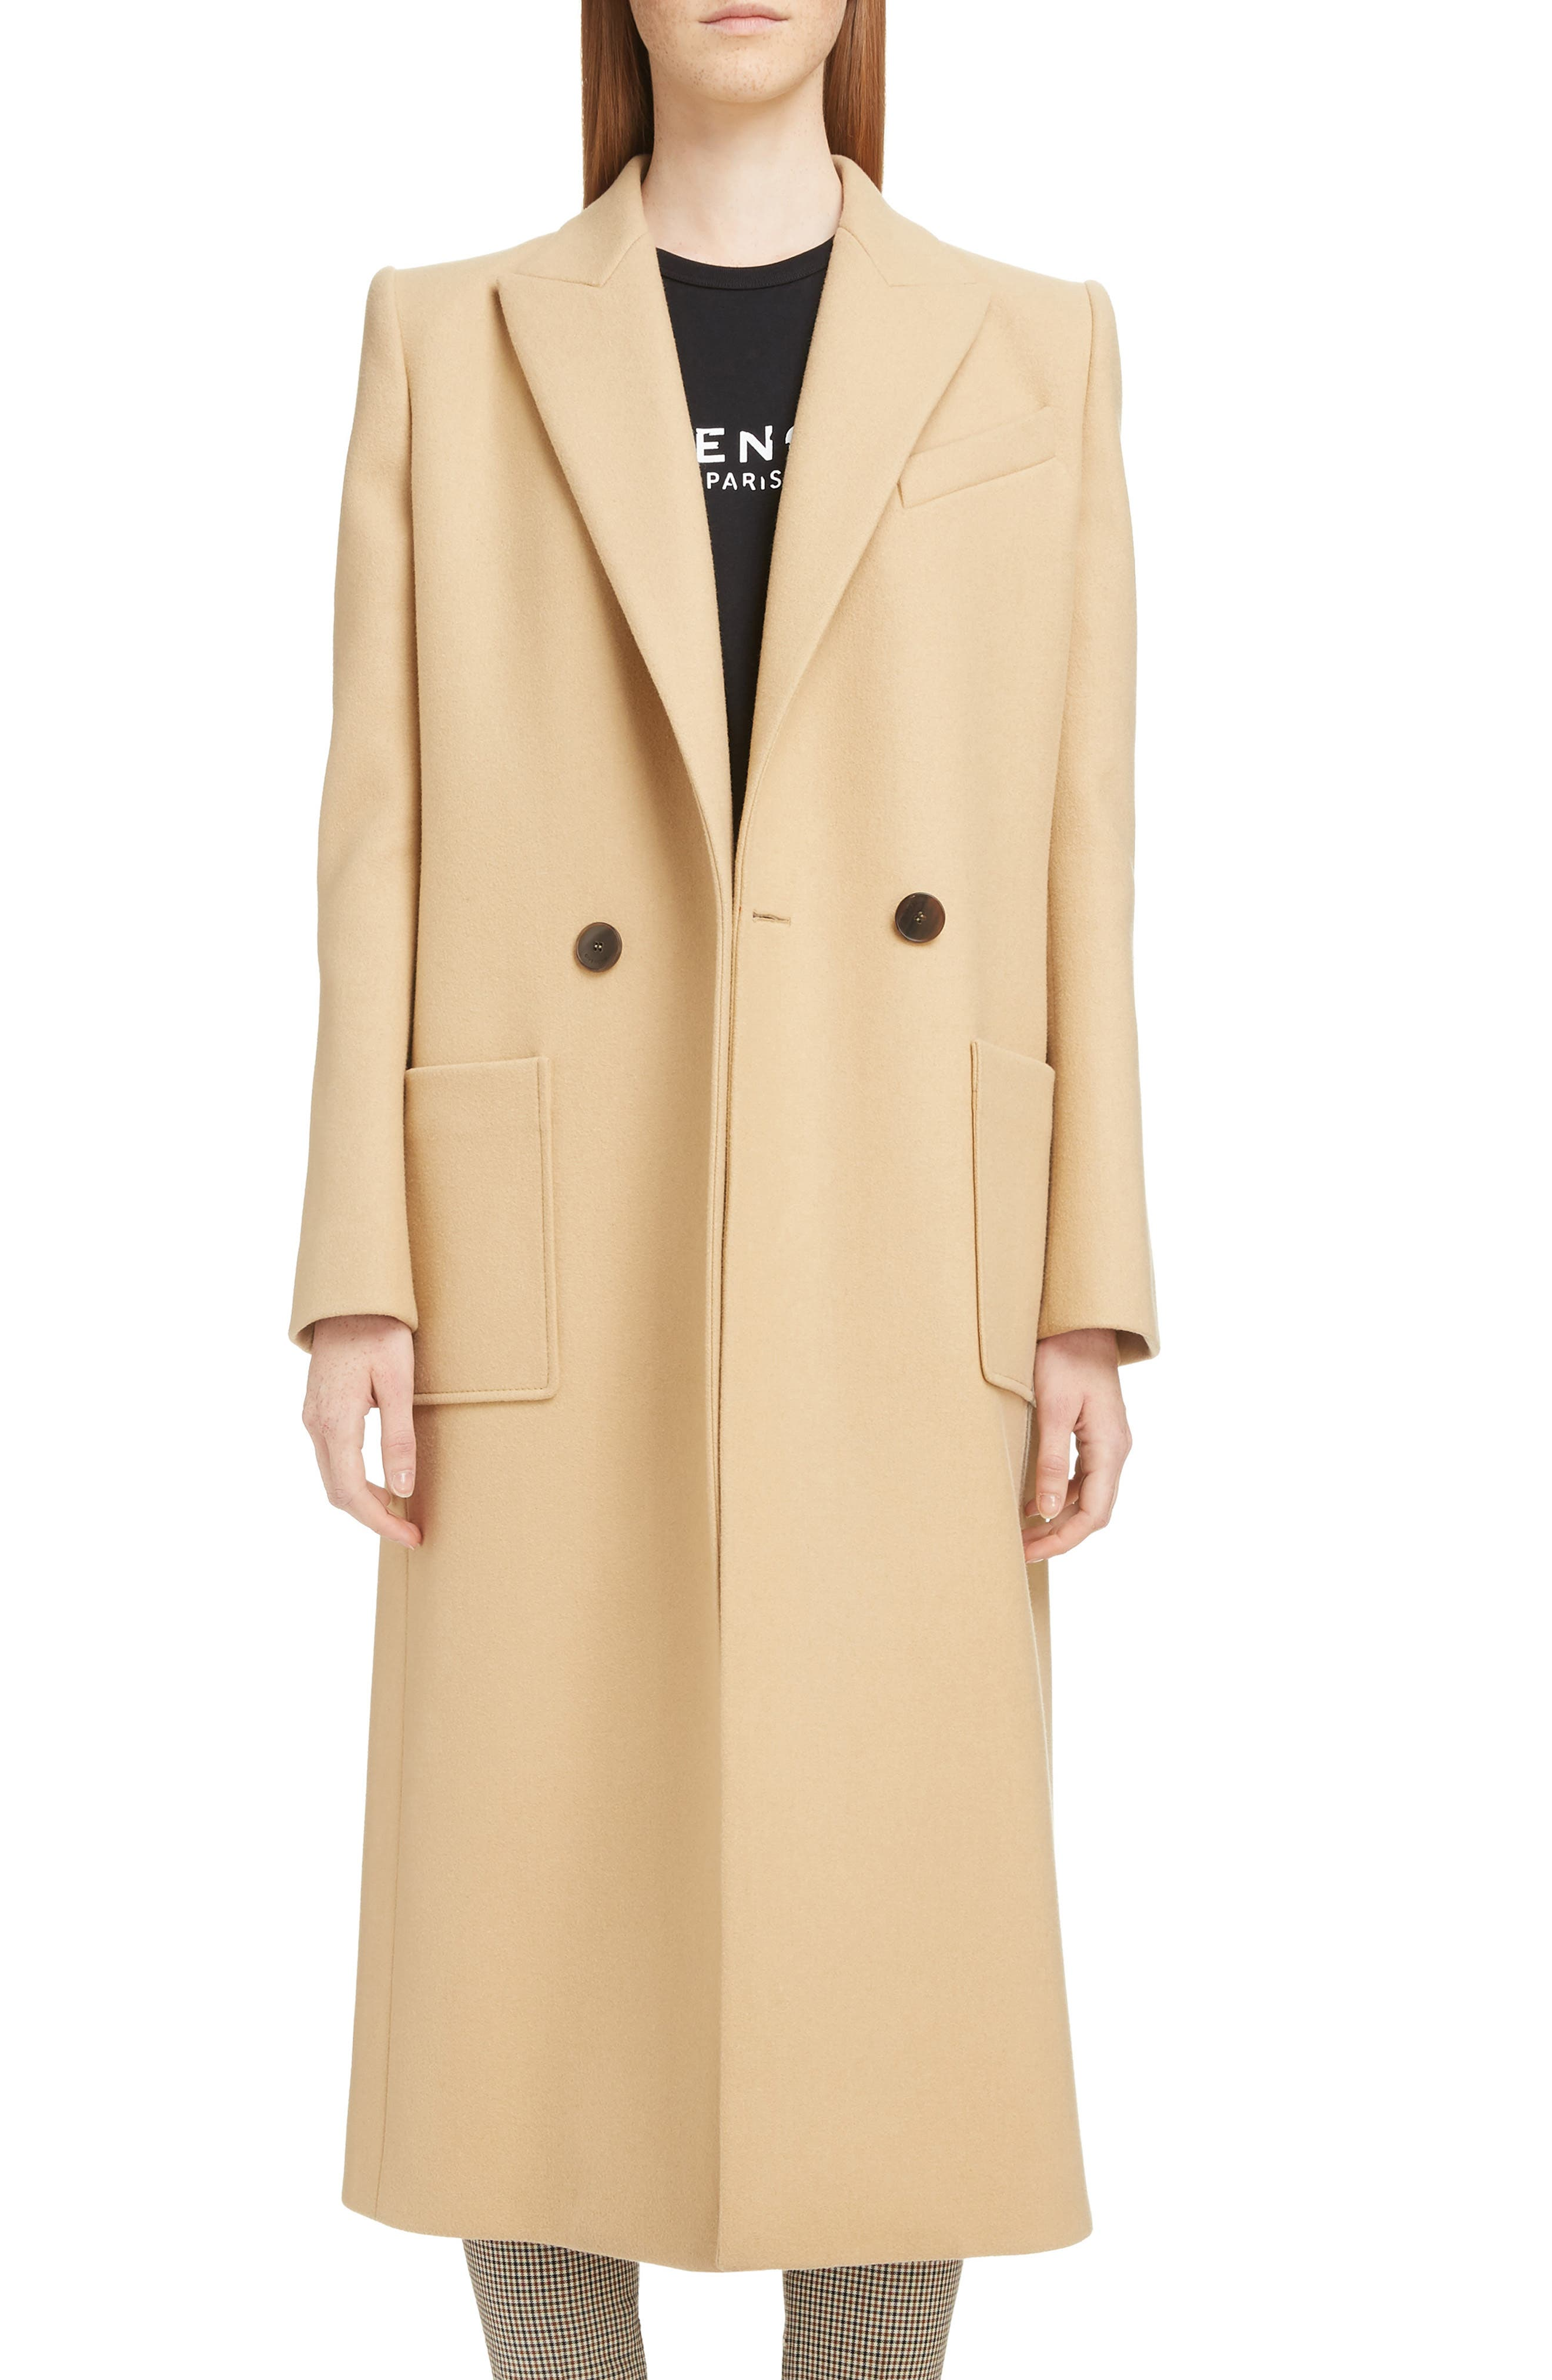 GIVENCHY,                             Double Breasted Wool Coat,                             Main thumbnail 1, color,                             250-BEIGE